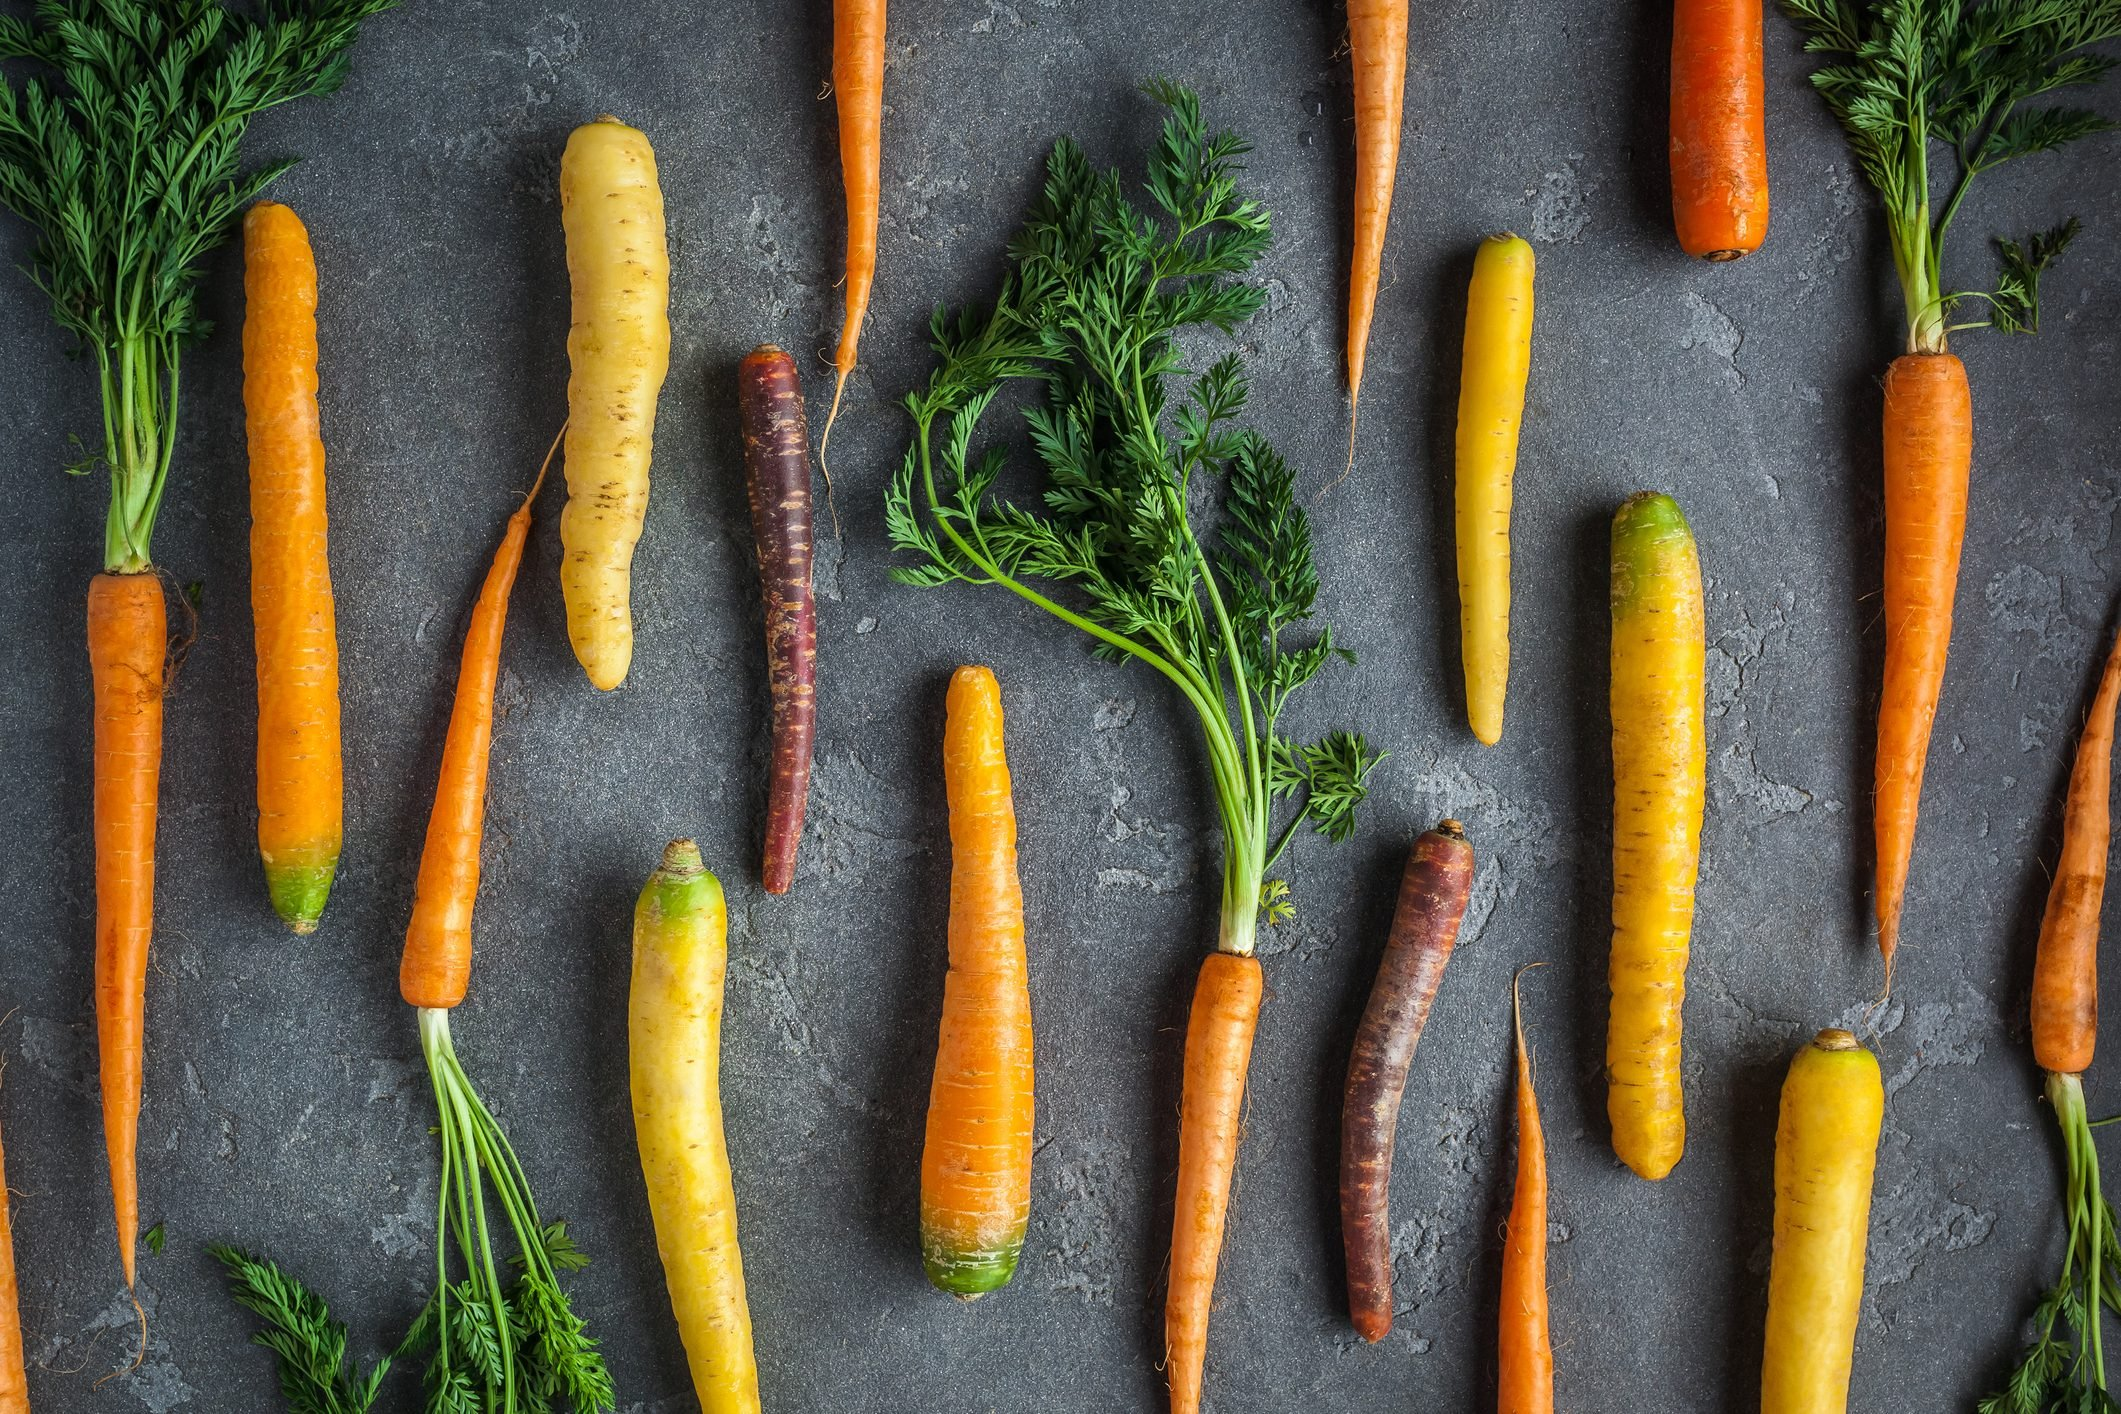 Fresh colorful carrots on dark background. Flat lay, top view